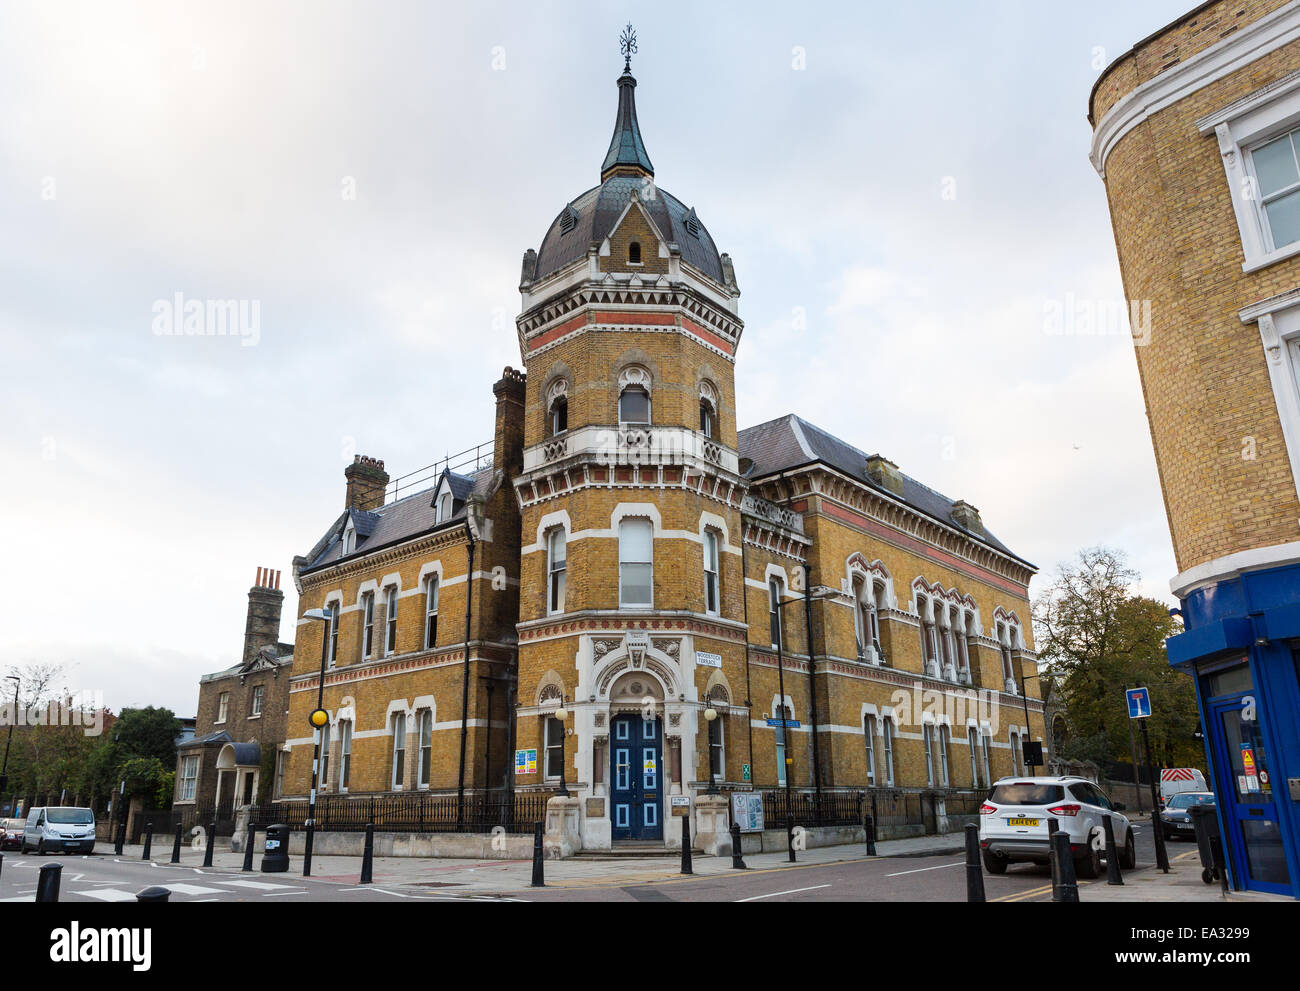 Old Poplar Town Hall and Council Offices in Tower Hamlets, East London - Stock Image